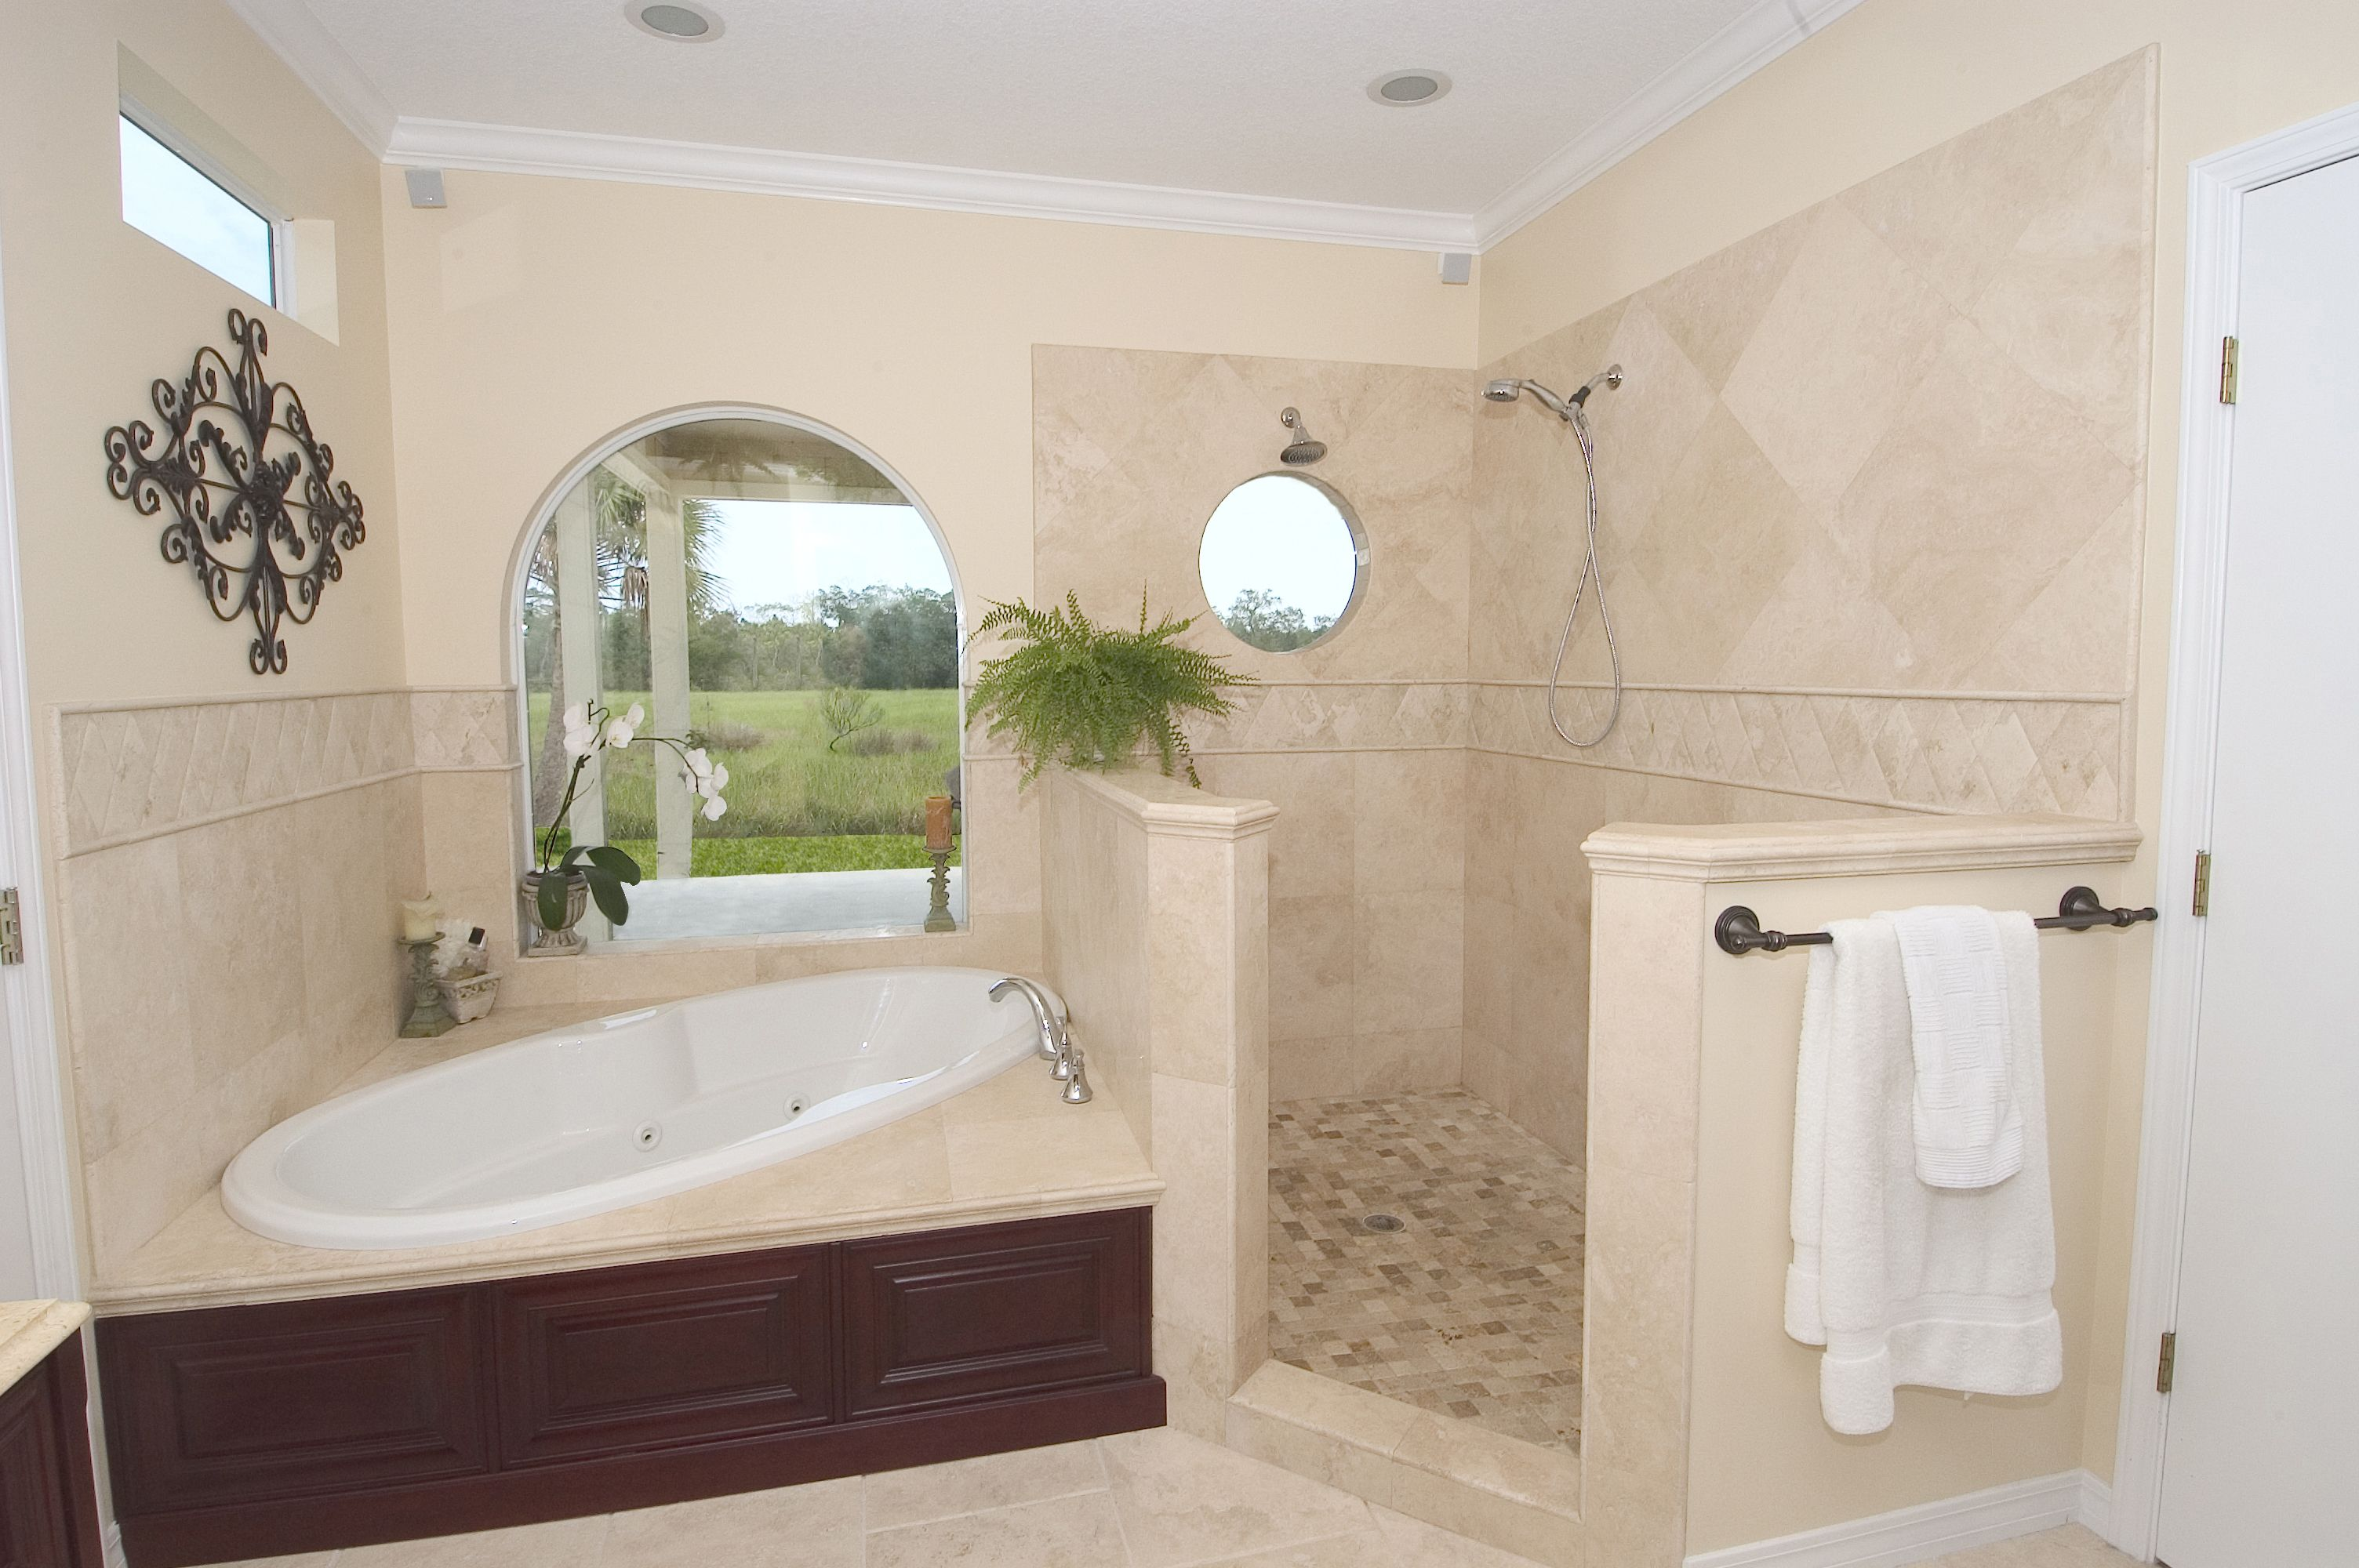 Master Bathroom Photos Gallery | BHI Construction Group, LLC ...